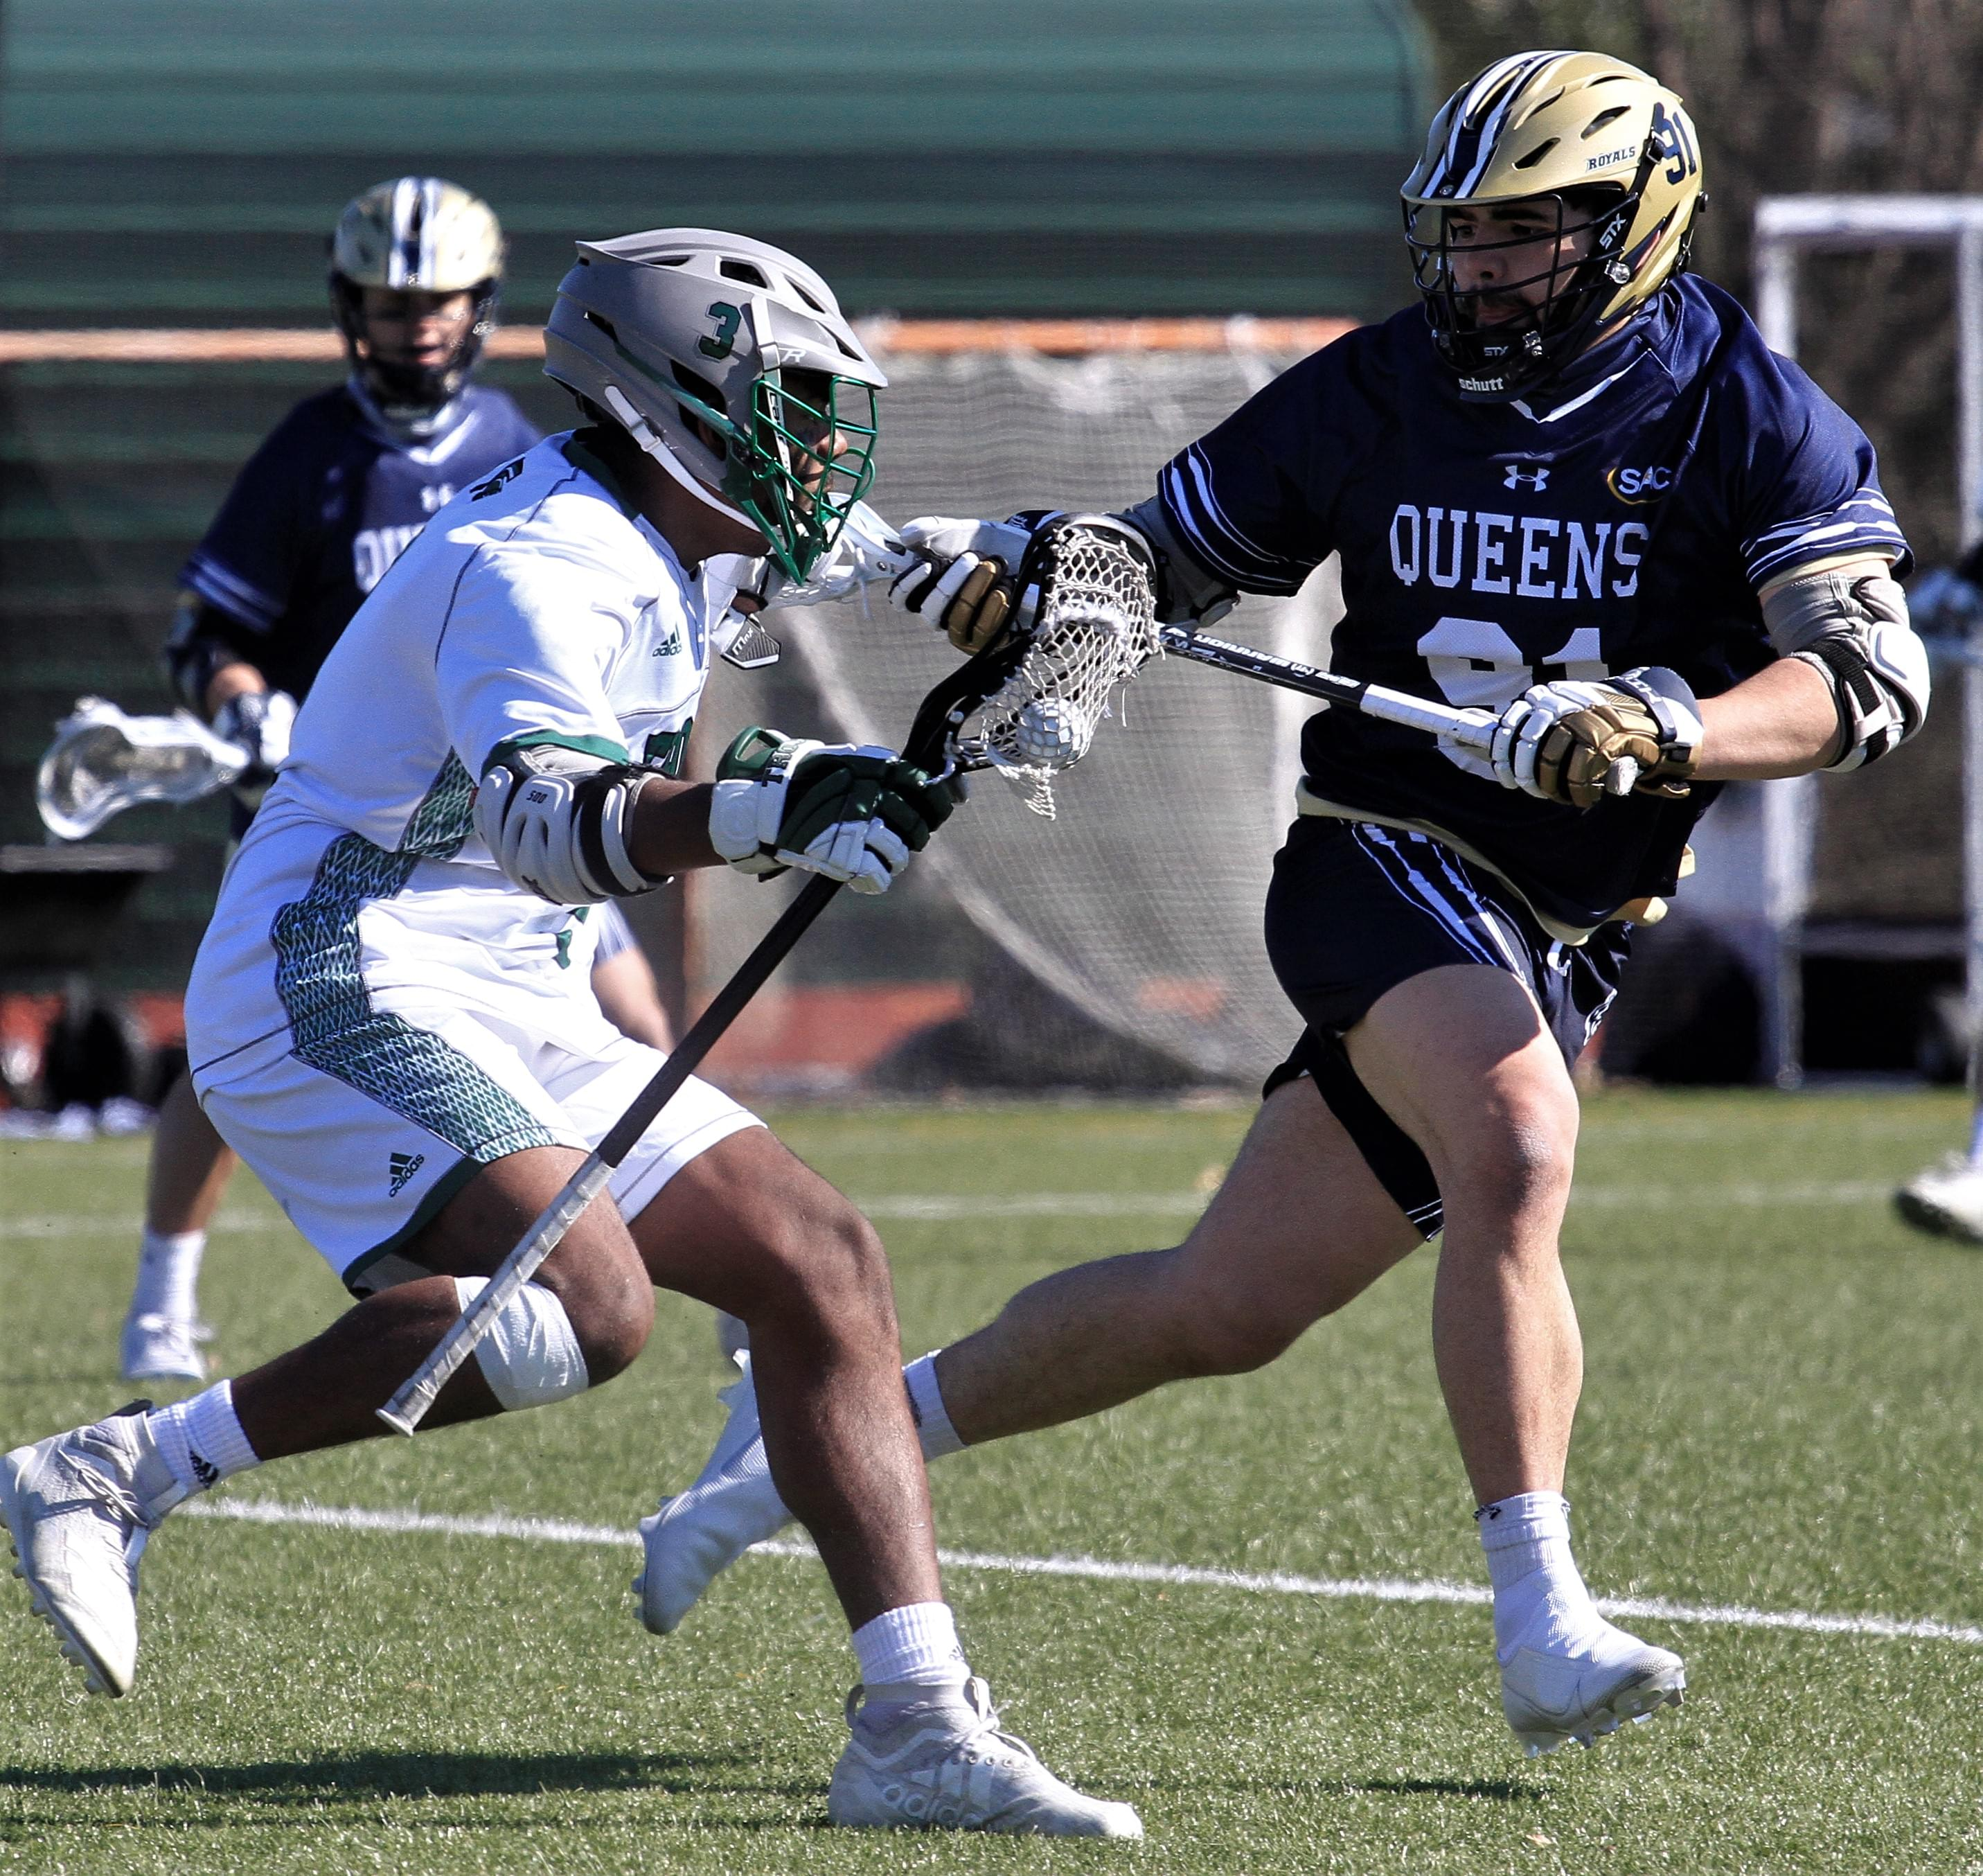 Men's Lacrosse: Queens University At UMO (PHOTO GALLERY)